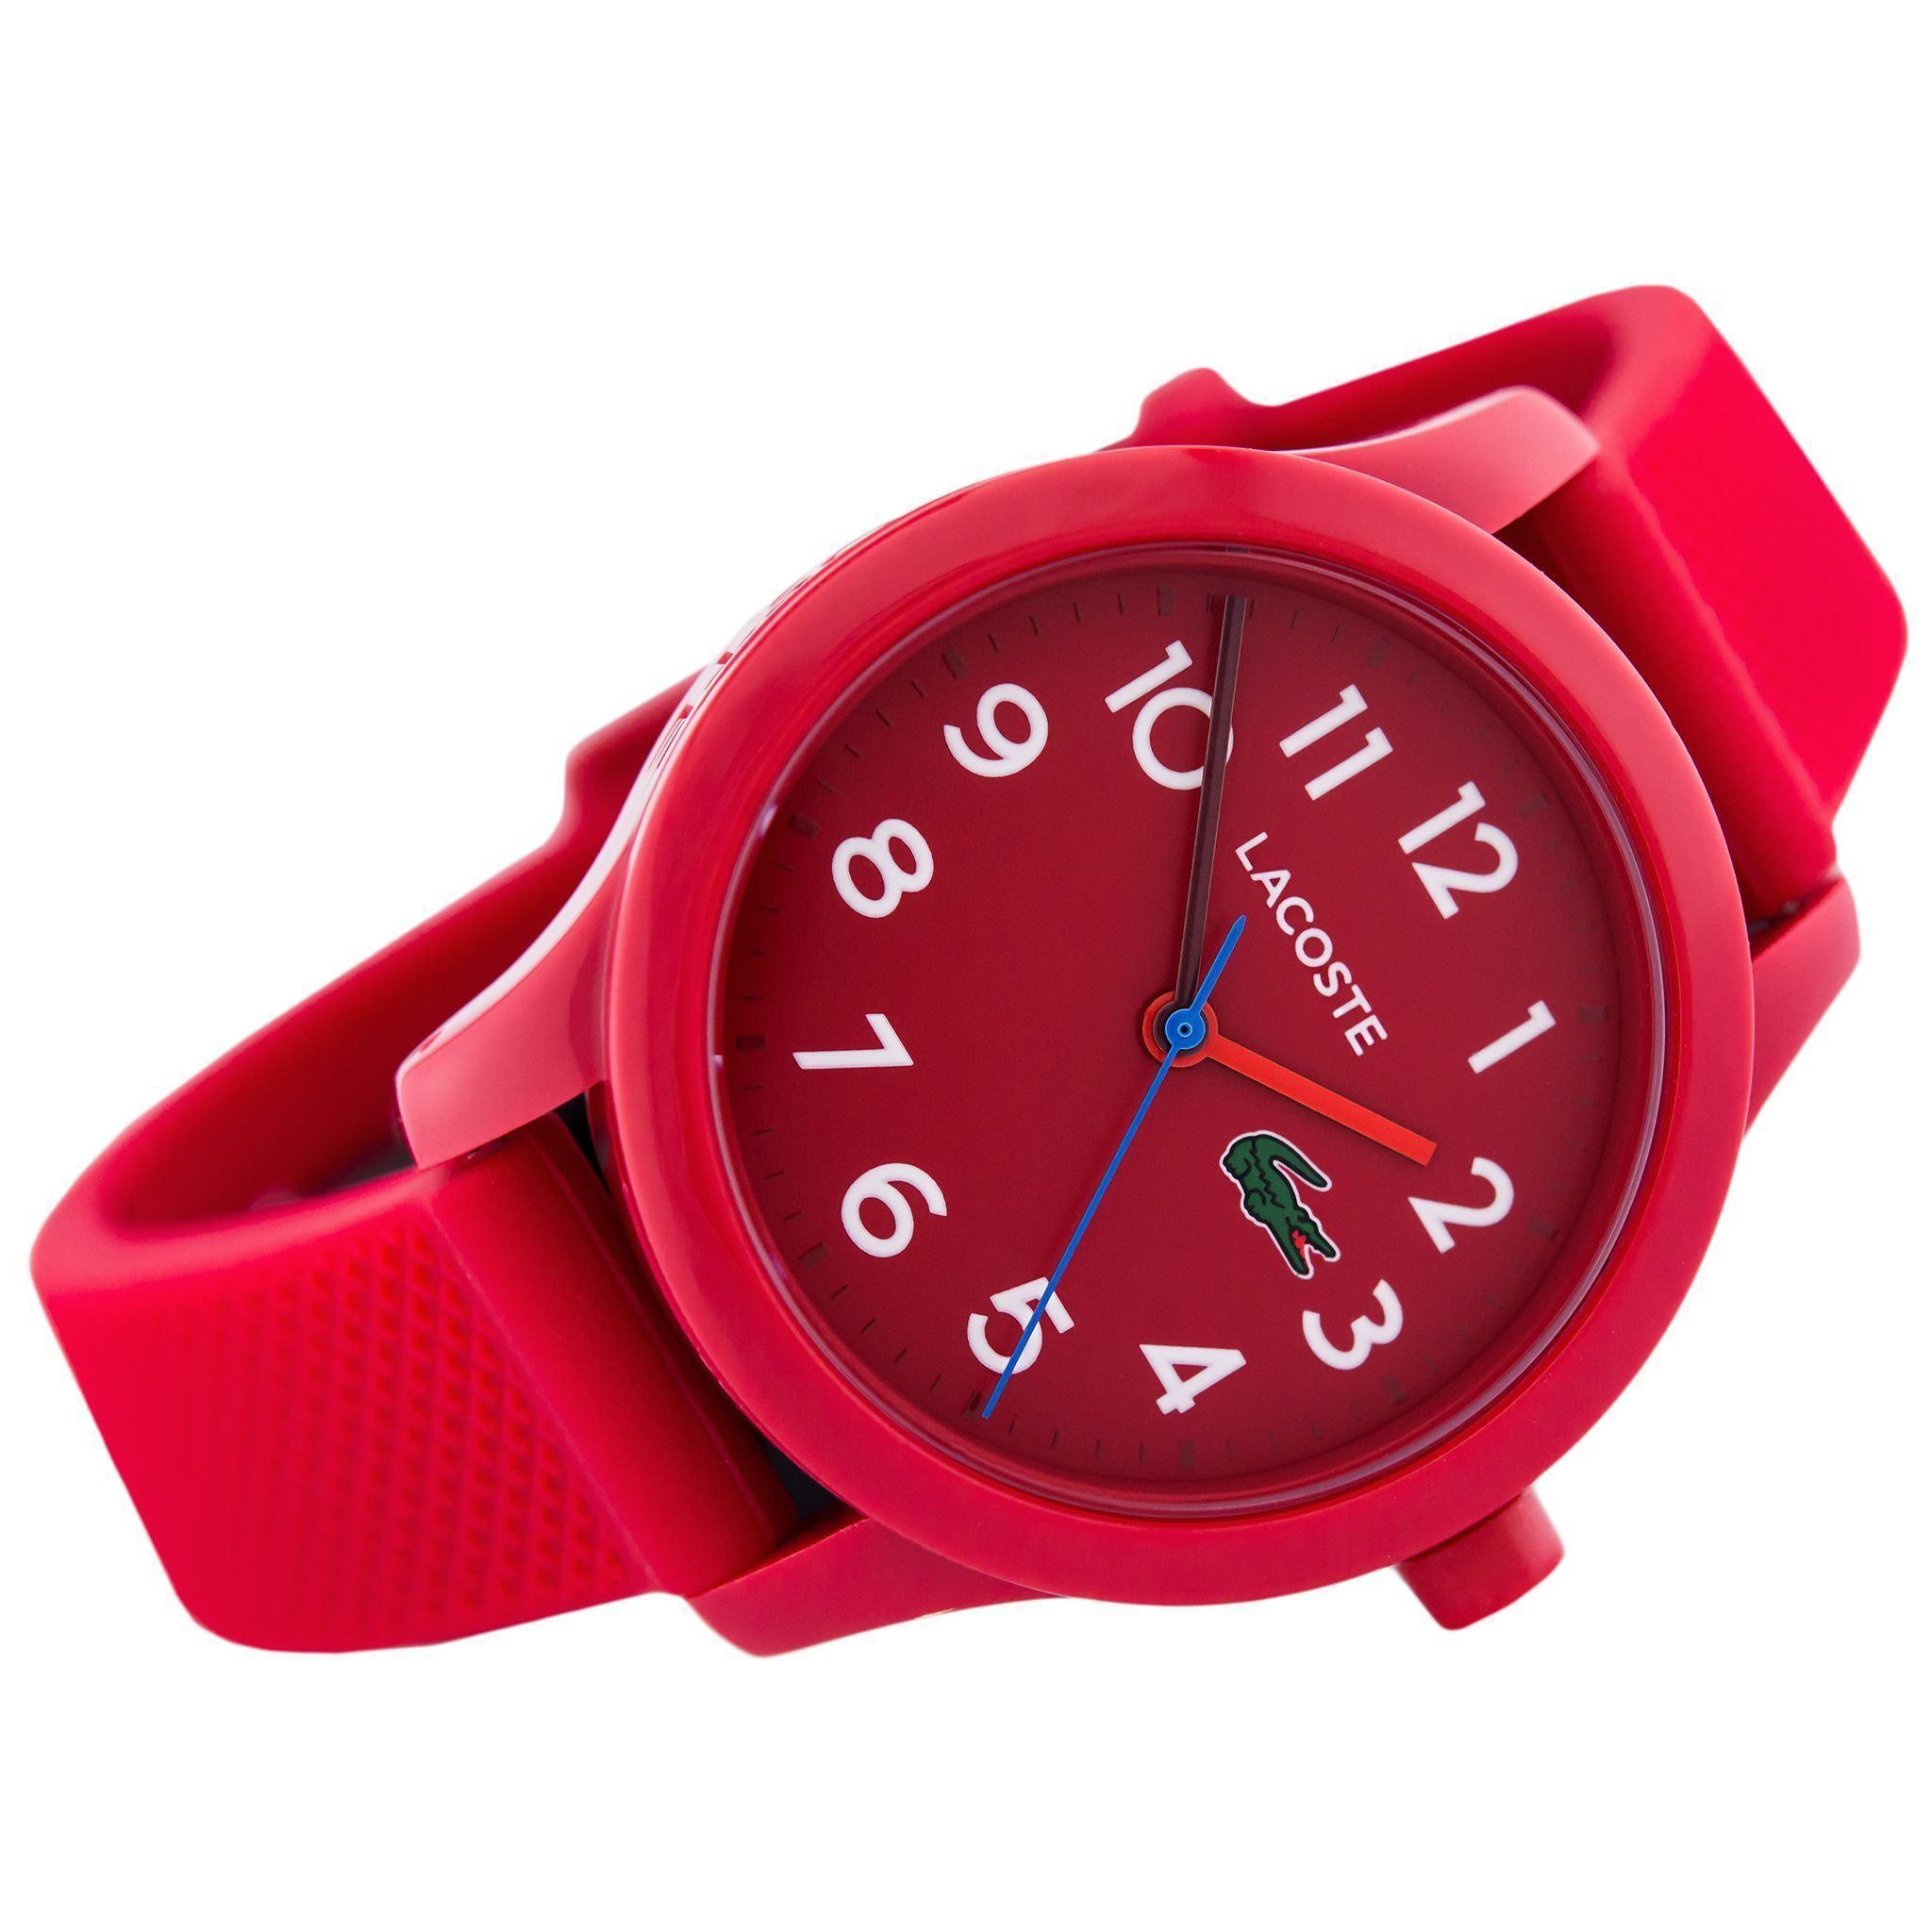 enticer in online analog casio at prices quick on brand watches lifestyle kids dial grey watch best buy view ferrari india